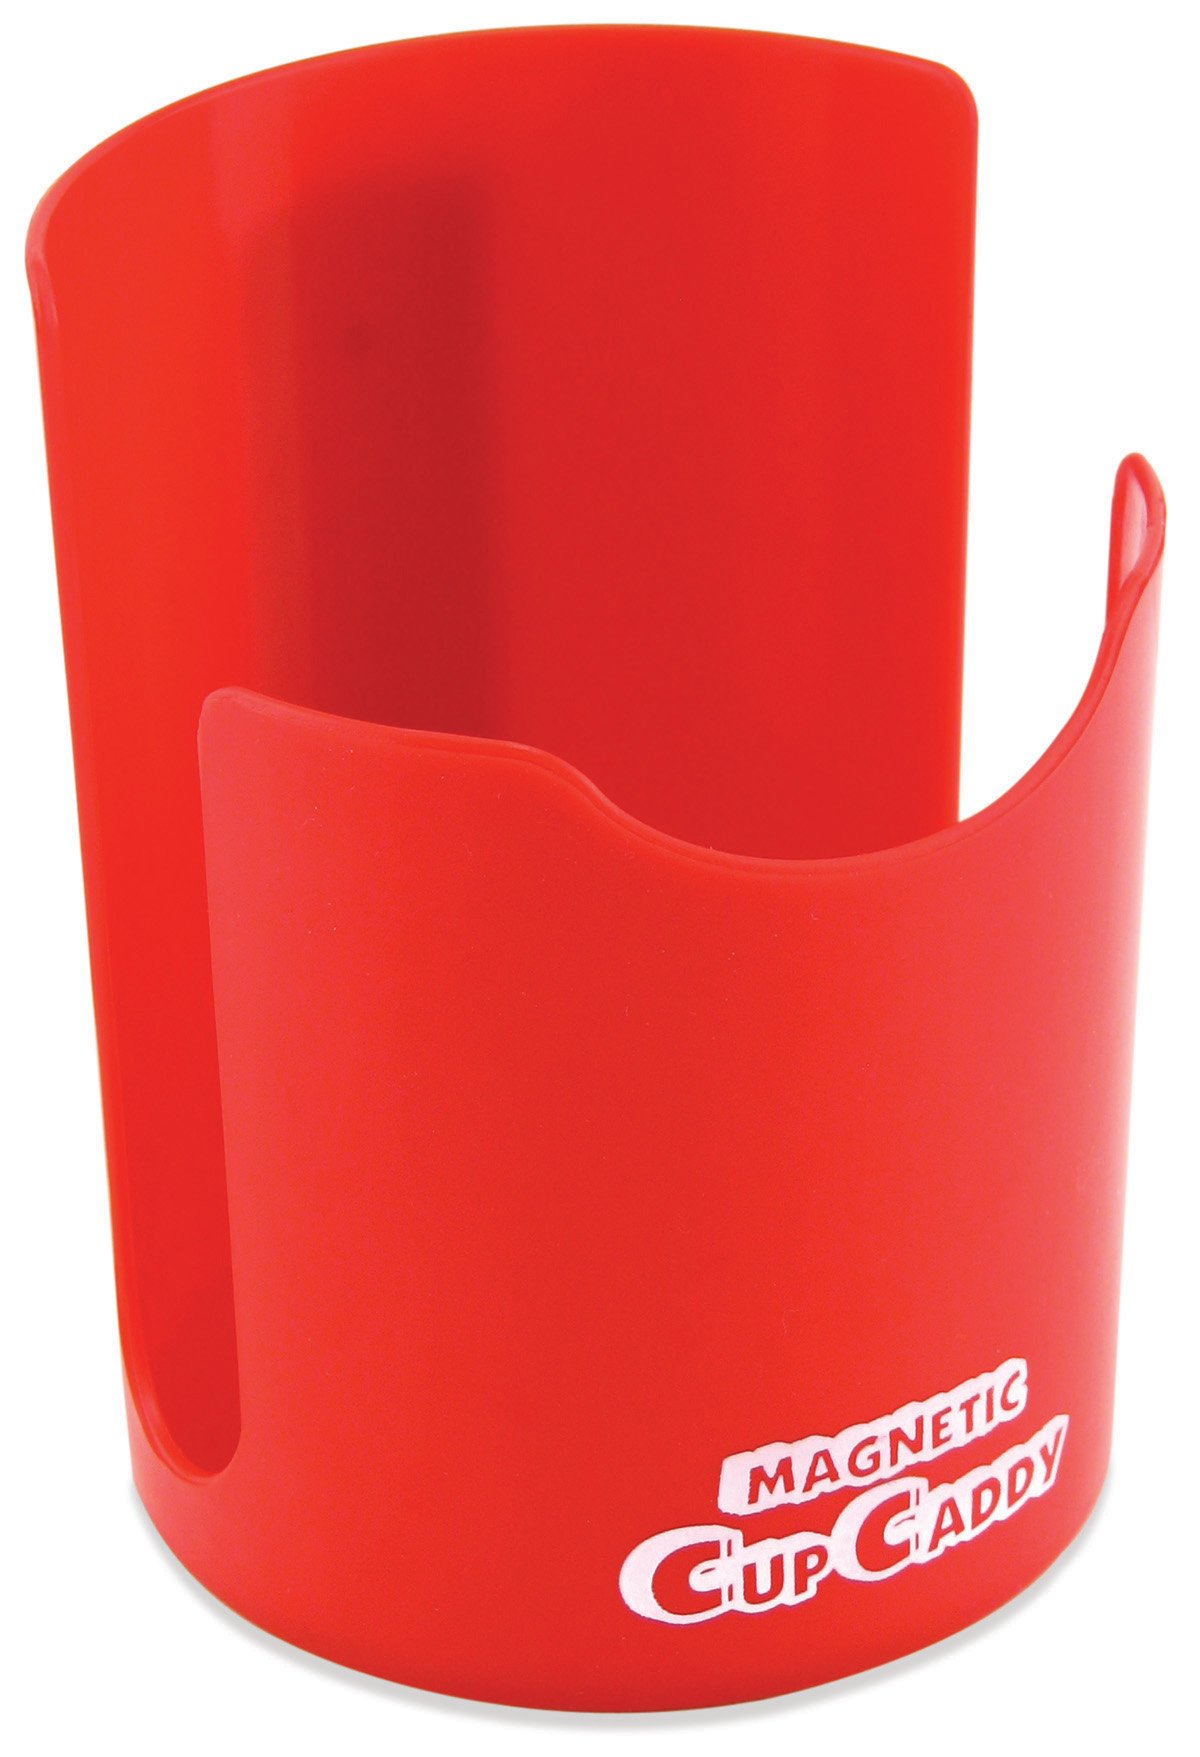 Master Magnetics 07582X6 Magnetic Cup Caddy, 3.5'' Length, 3.5'' Width, 4.625'' Height, Red (Pack of 6)